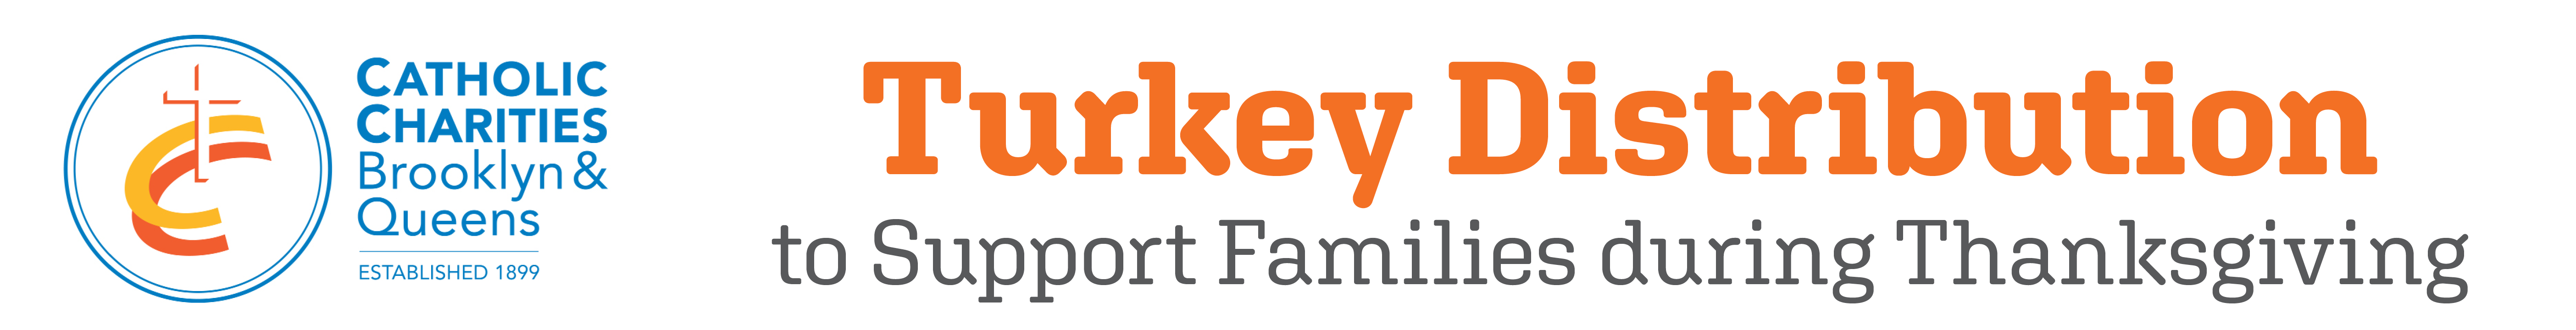 Turkey distribution event banner for the website